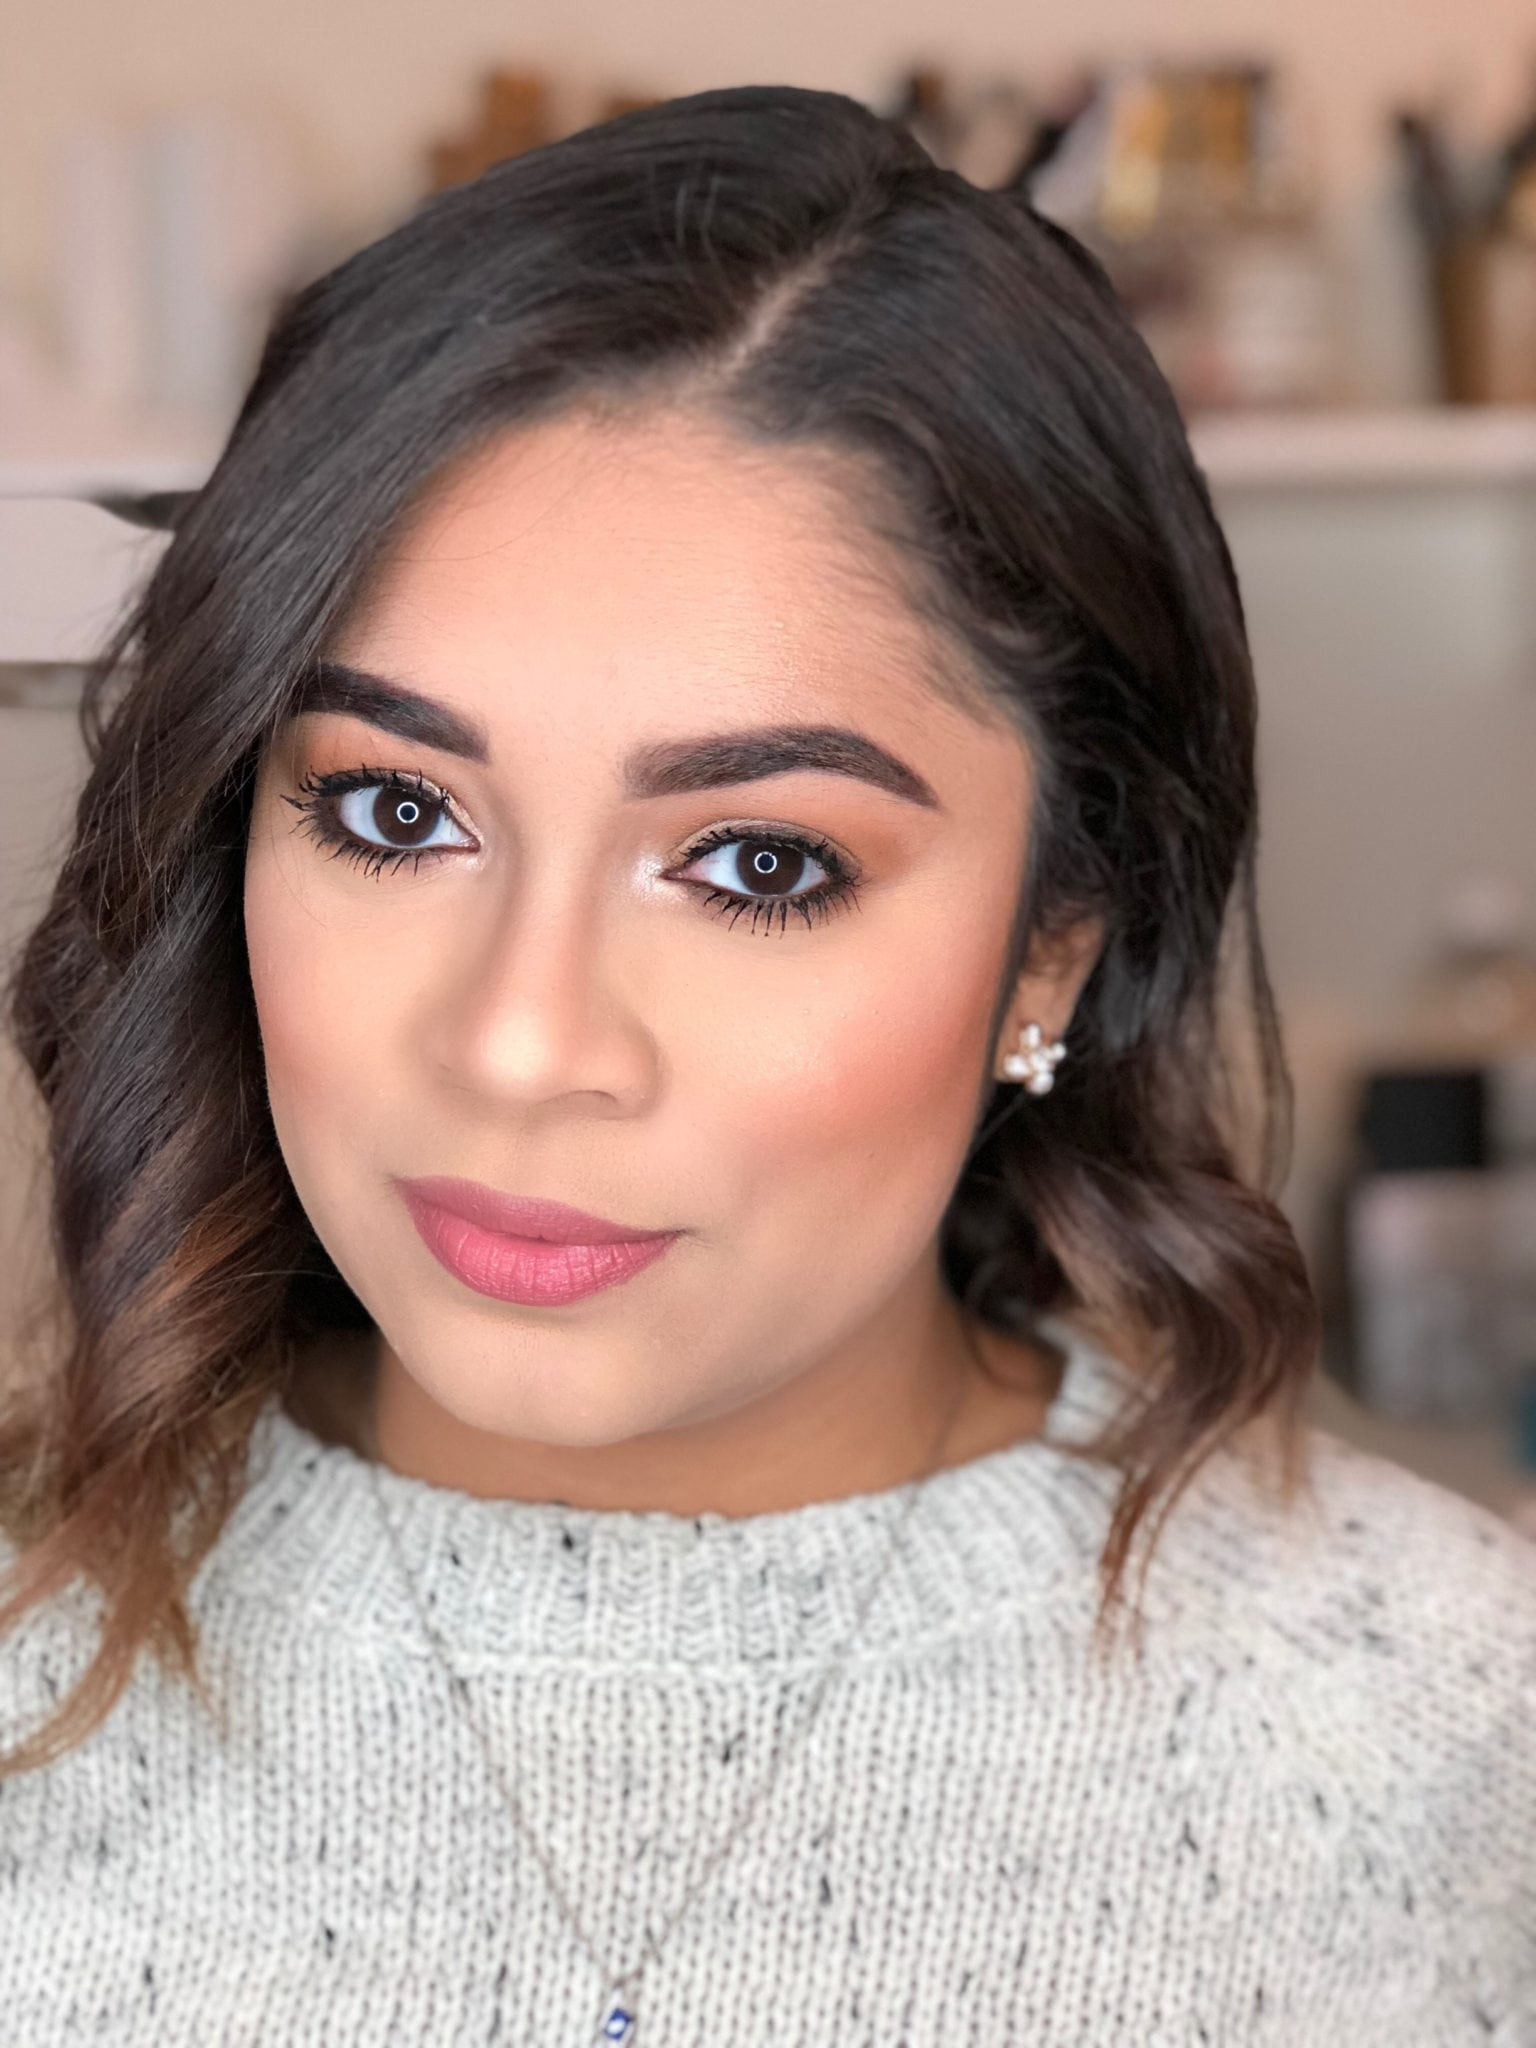 4 Perfect Pout for Thanksgiving